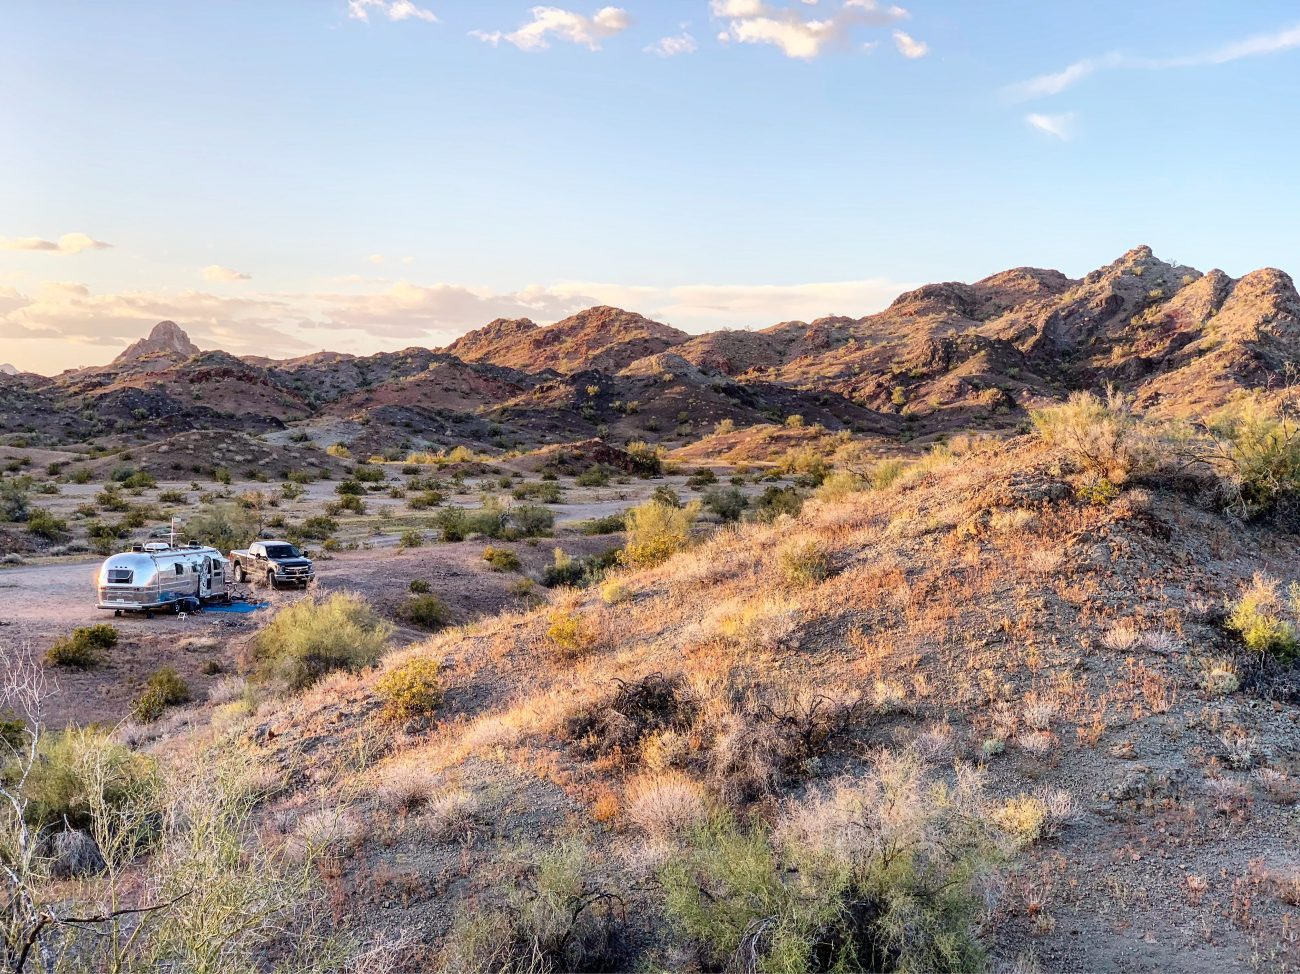 Boondocking on BLM